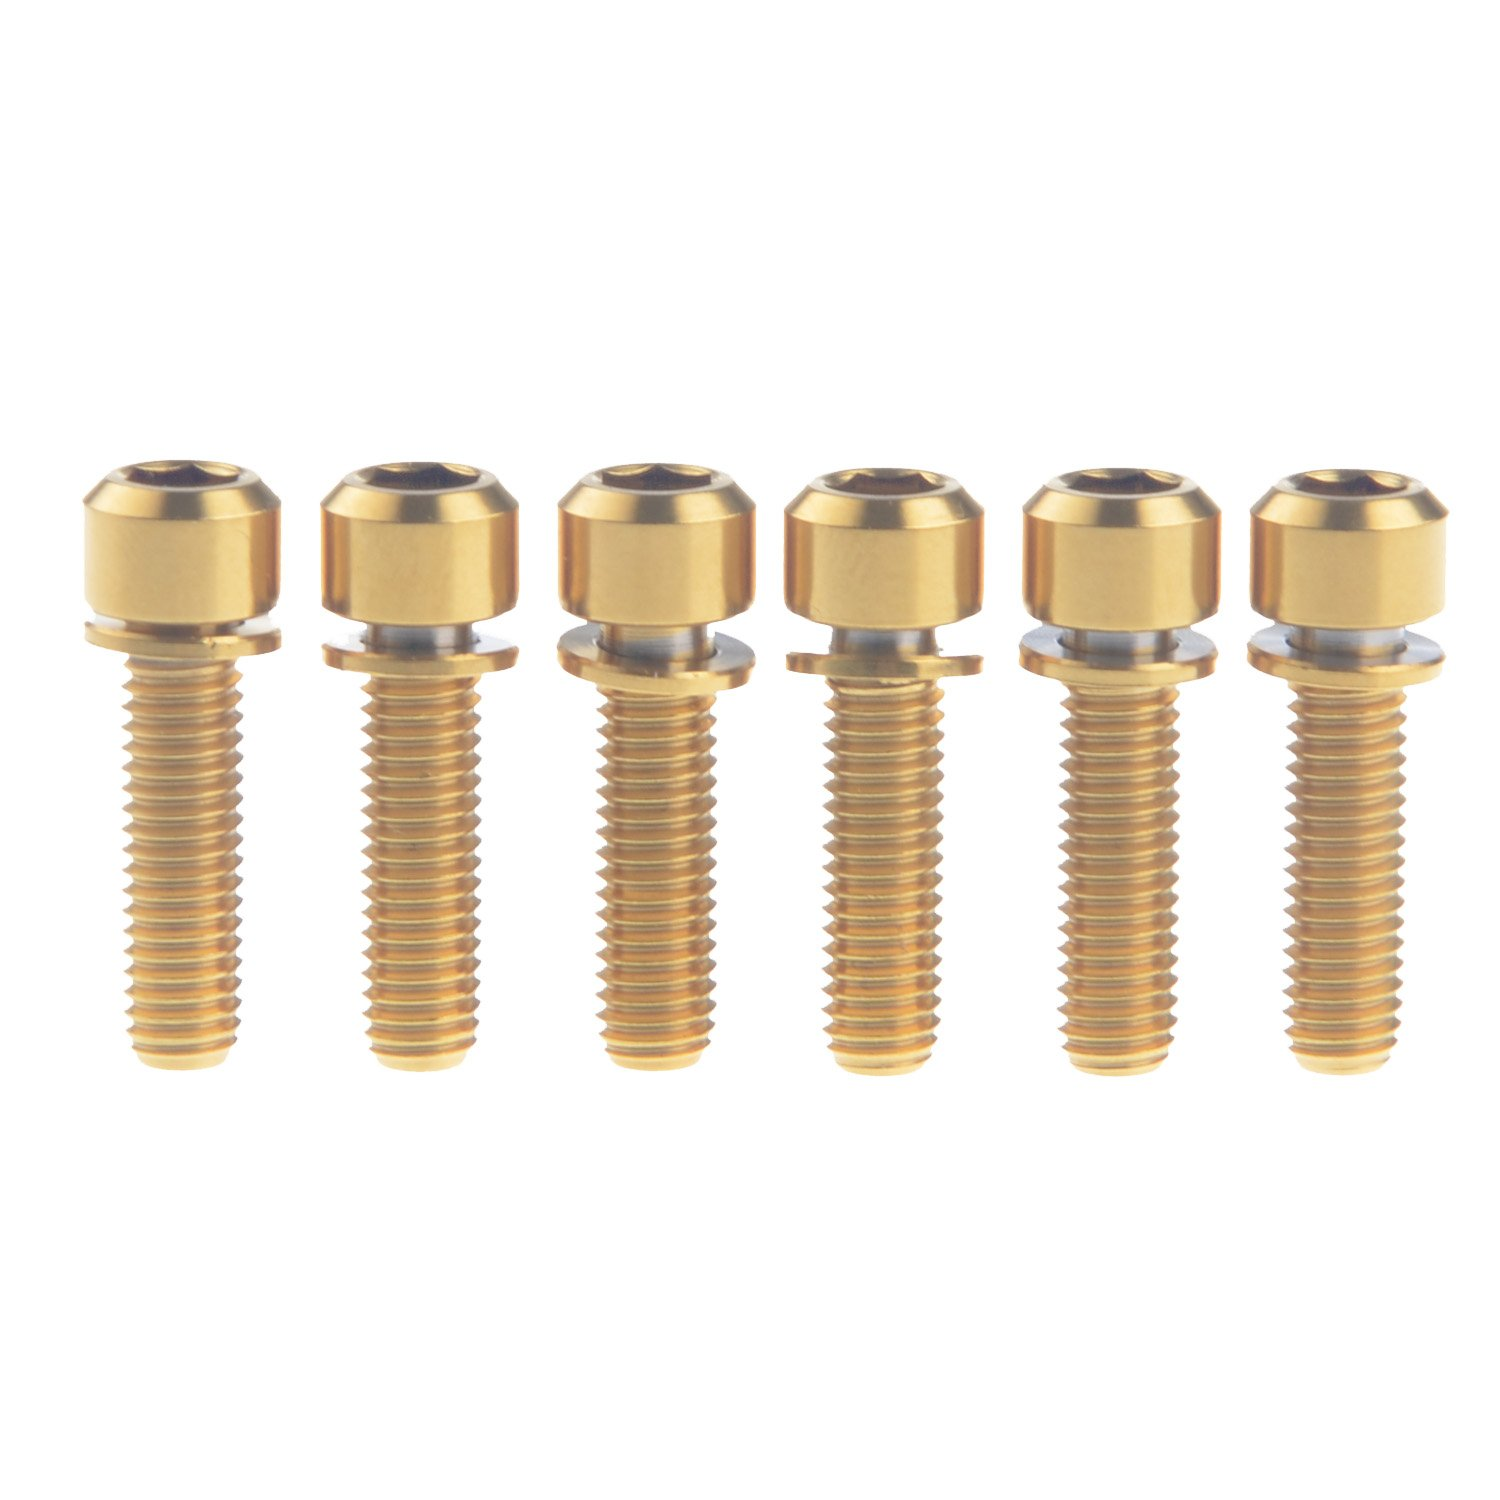 Wanyifa Titanium Ti Bicycle Stem M5x18mm Square Head Allen Head Gold Bolt with Washers pack of 6